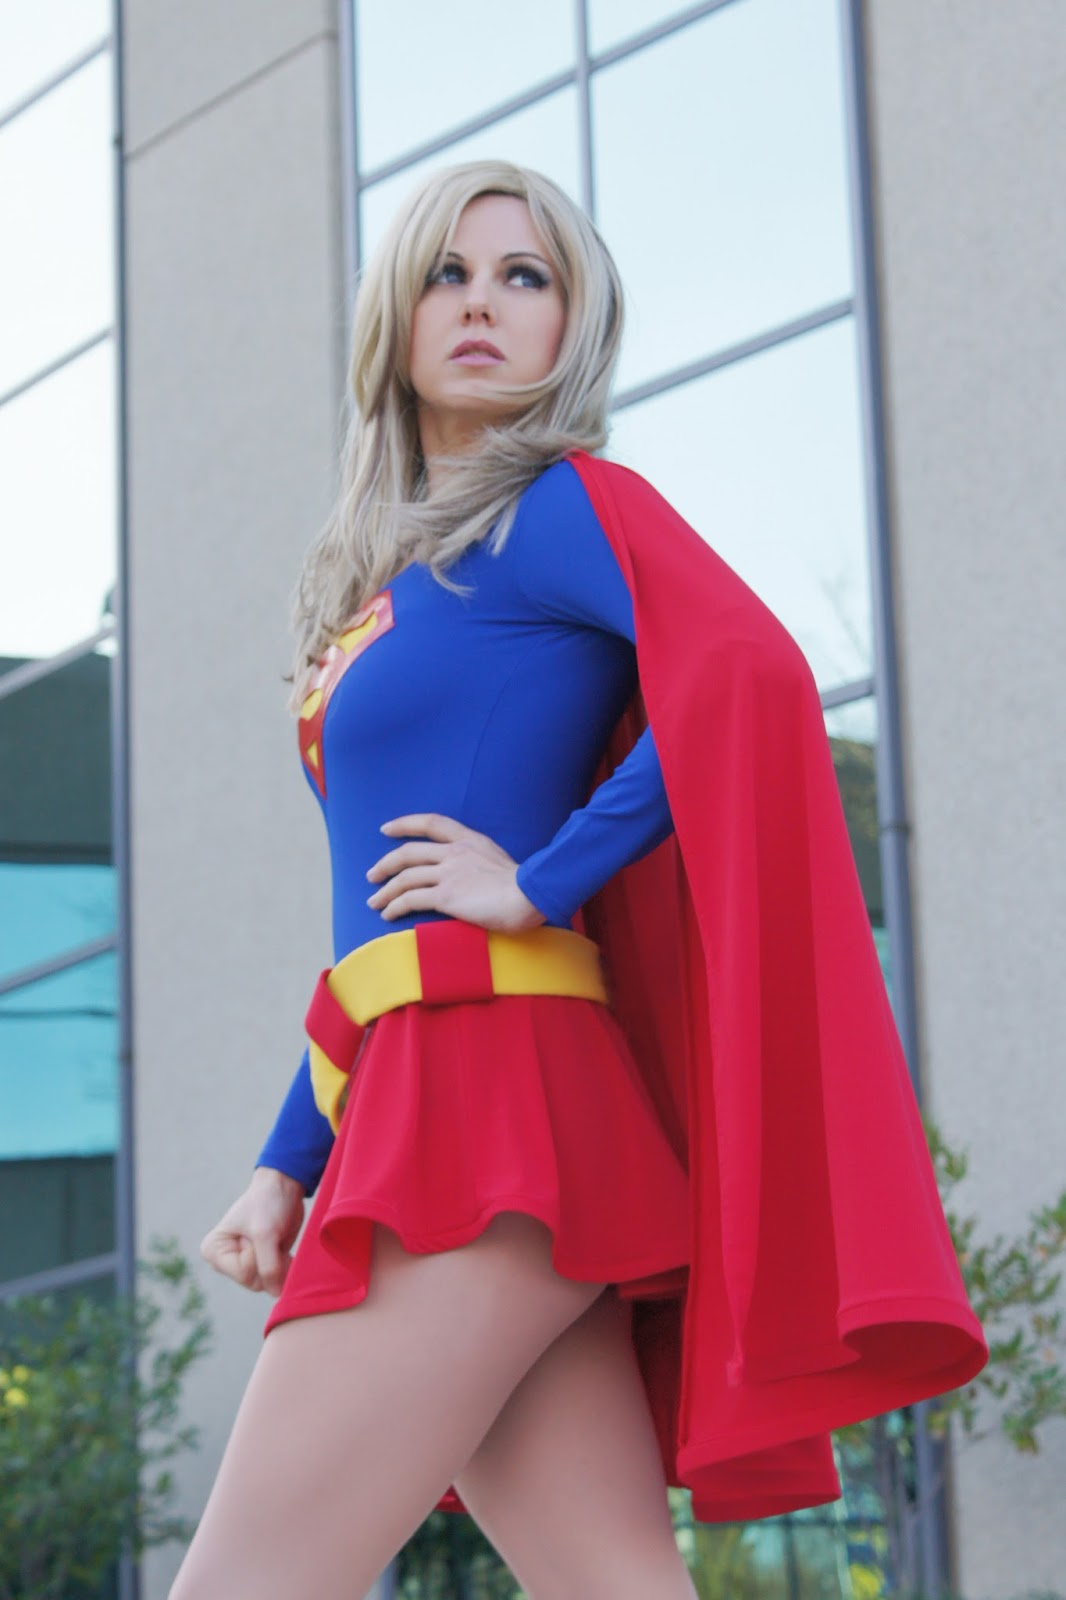 30 Supergirl Cosplayers Who Will Make You a Man of Steel